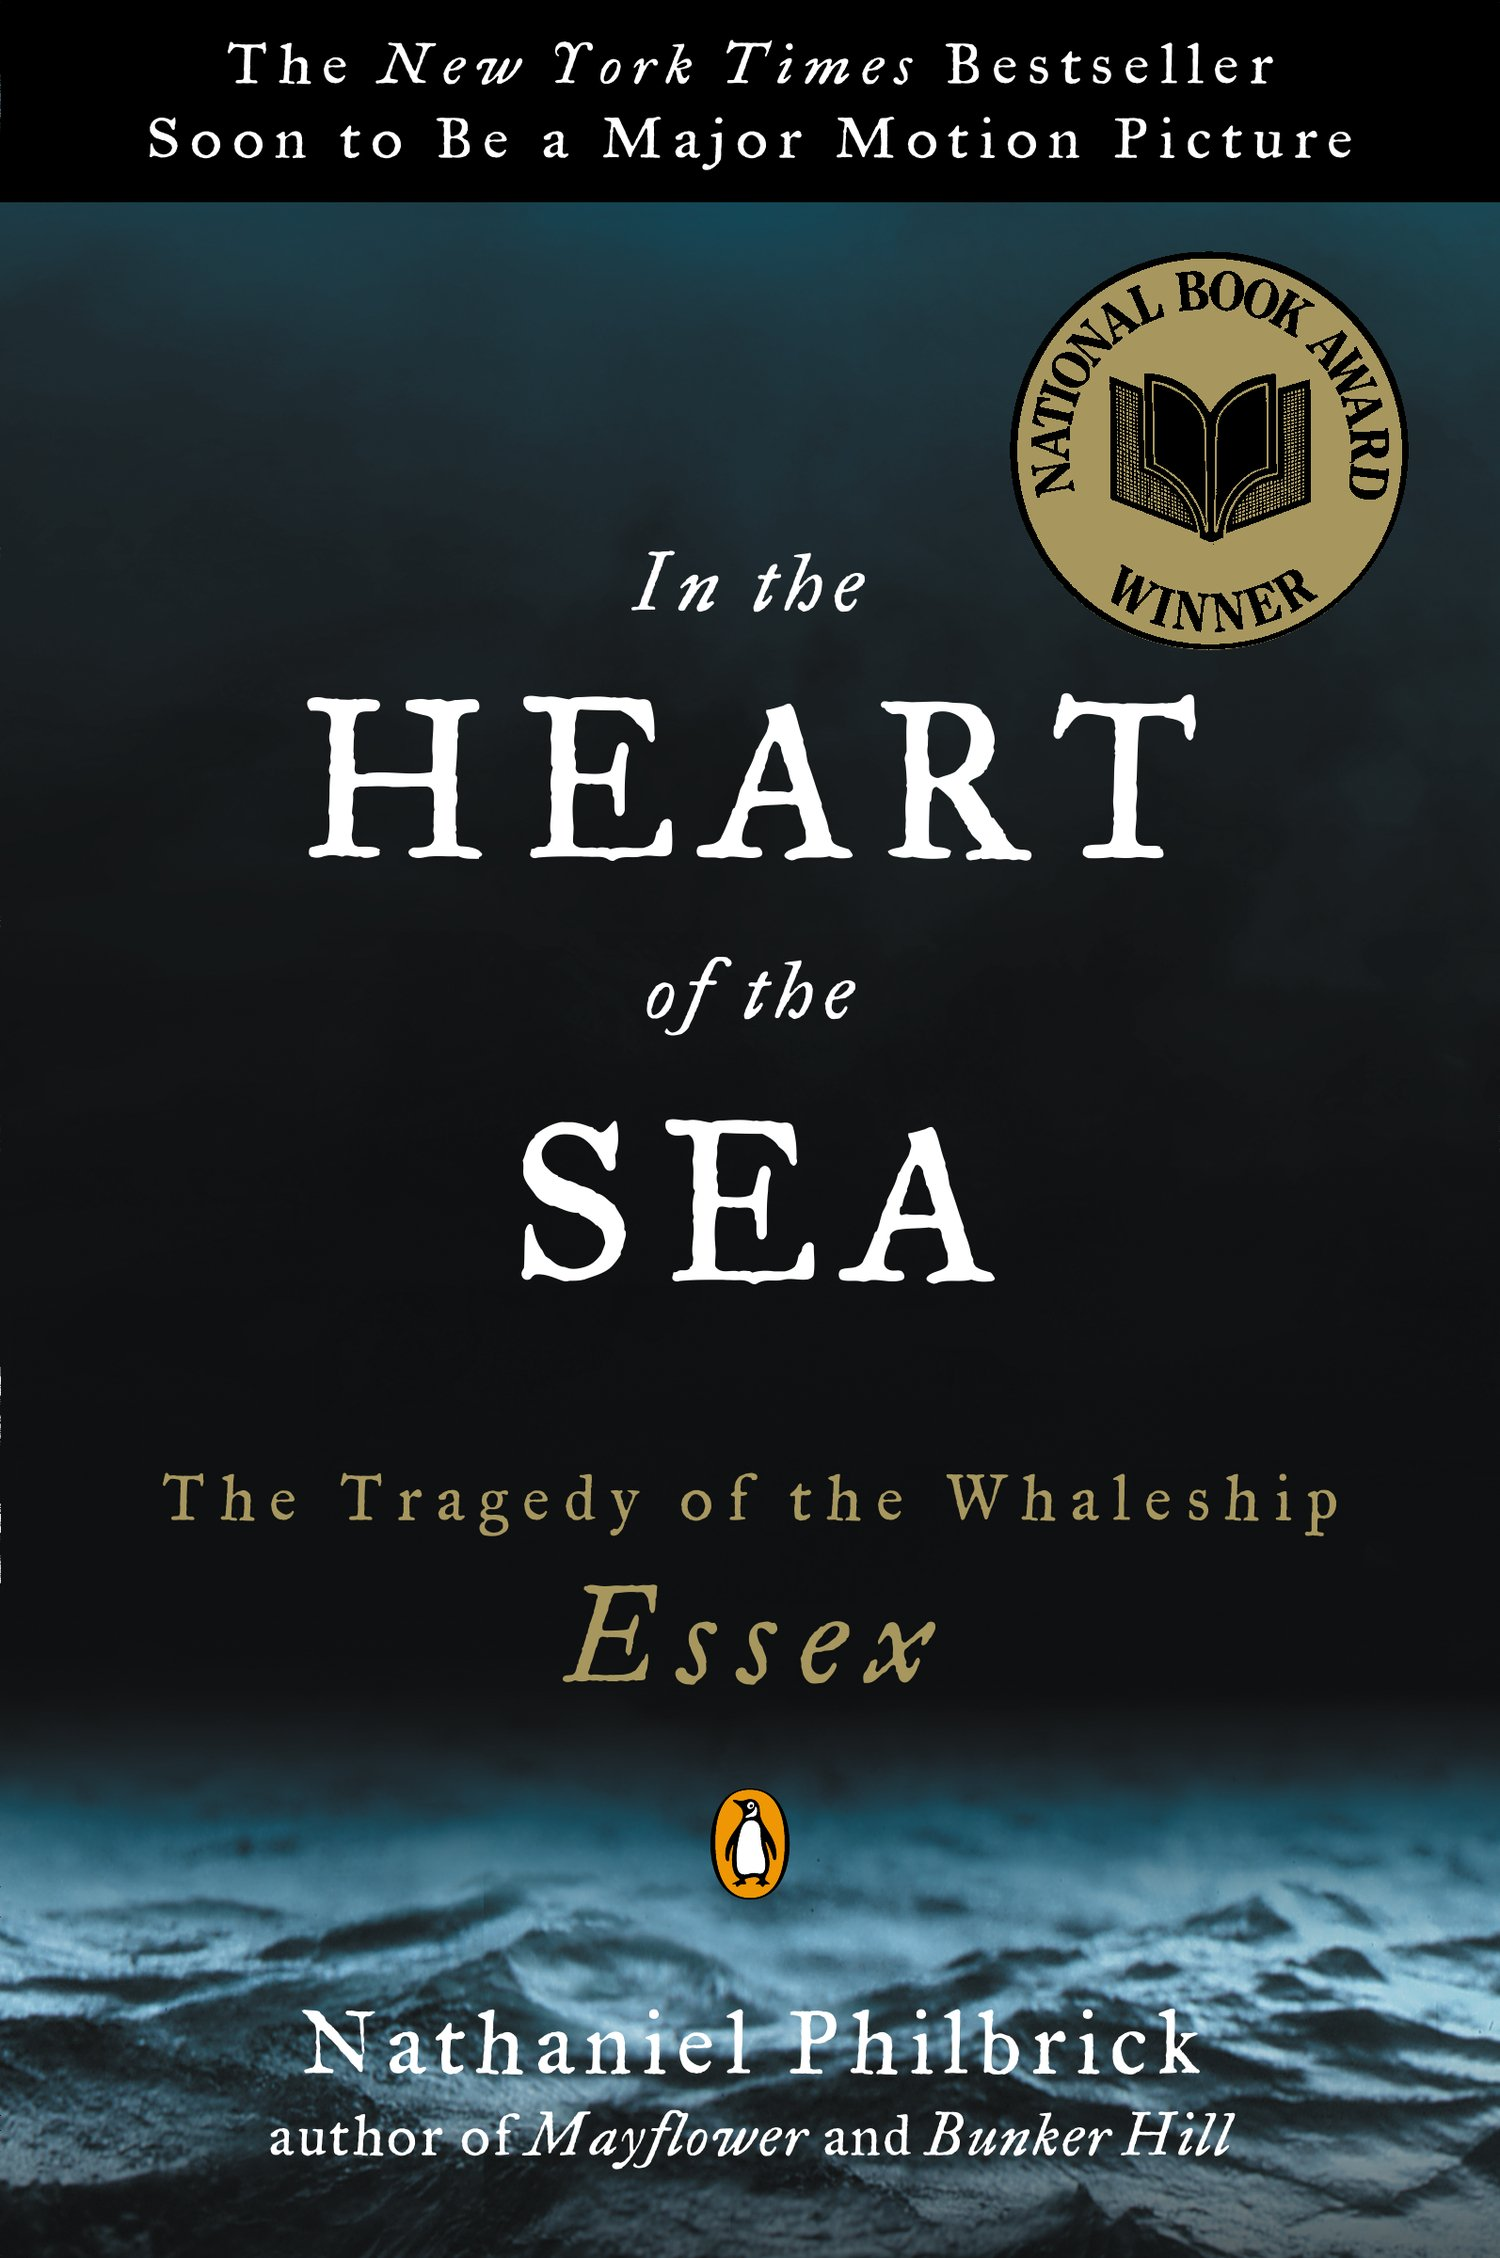 Learn about the most famous nautical tragedy of the 19th century, the sinking of the Essex-click the link below to learn more about this book.